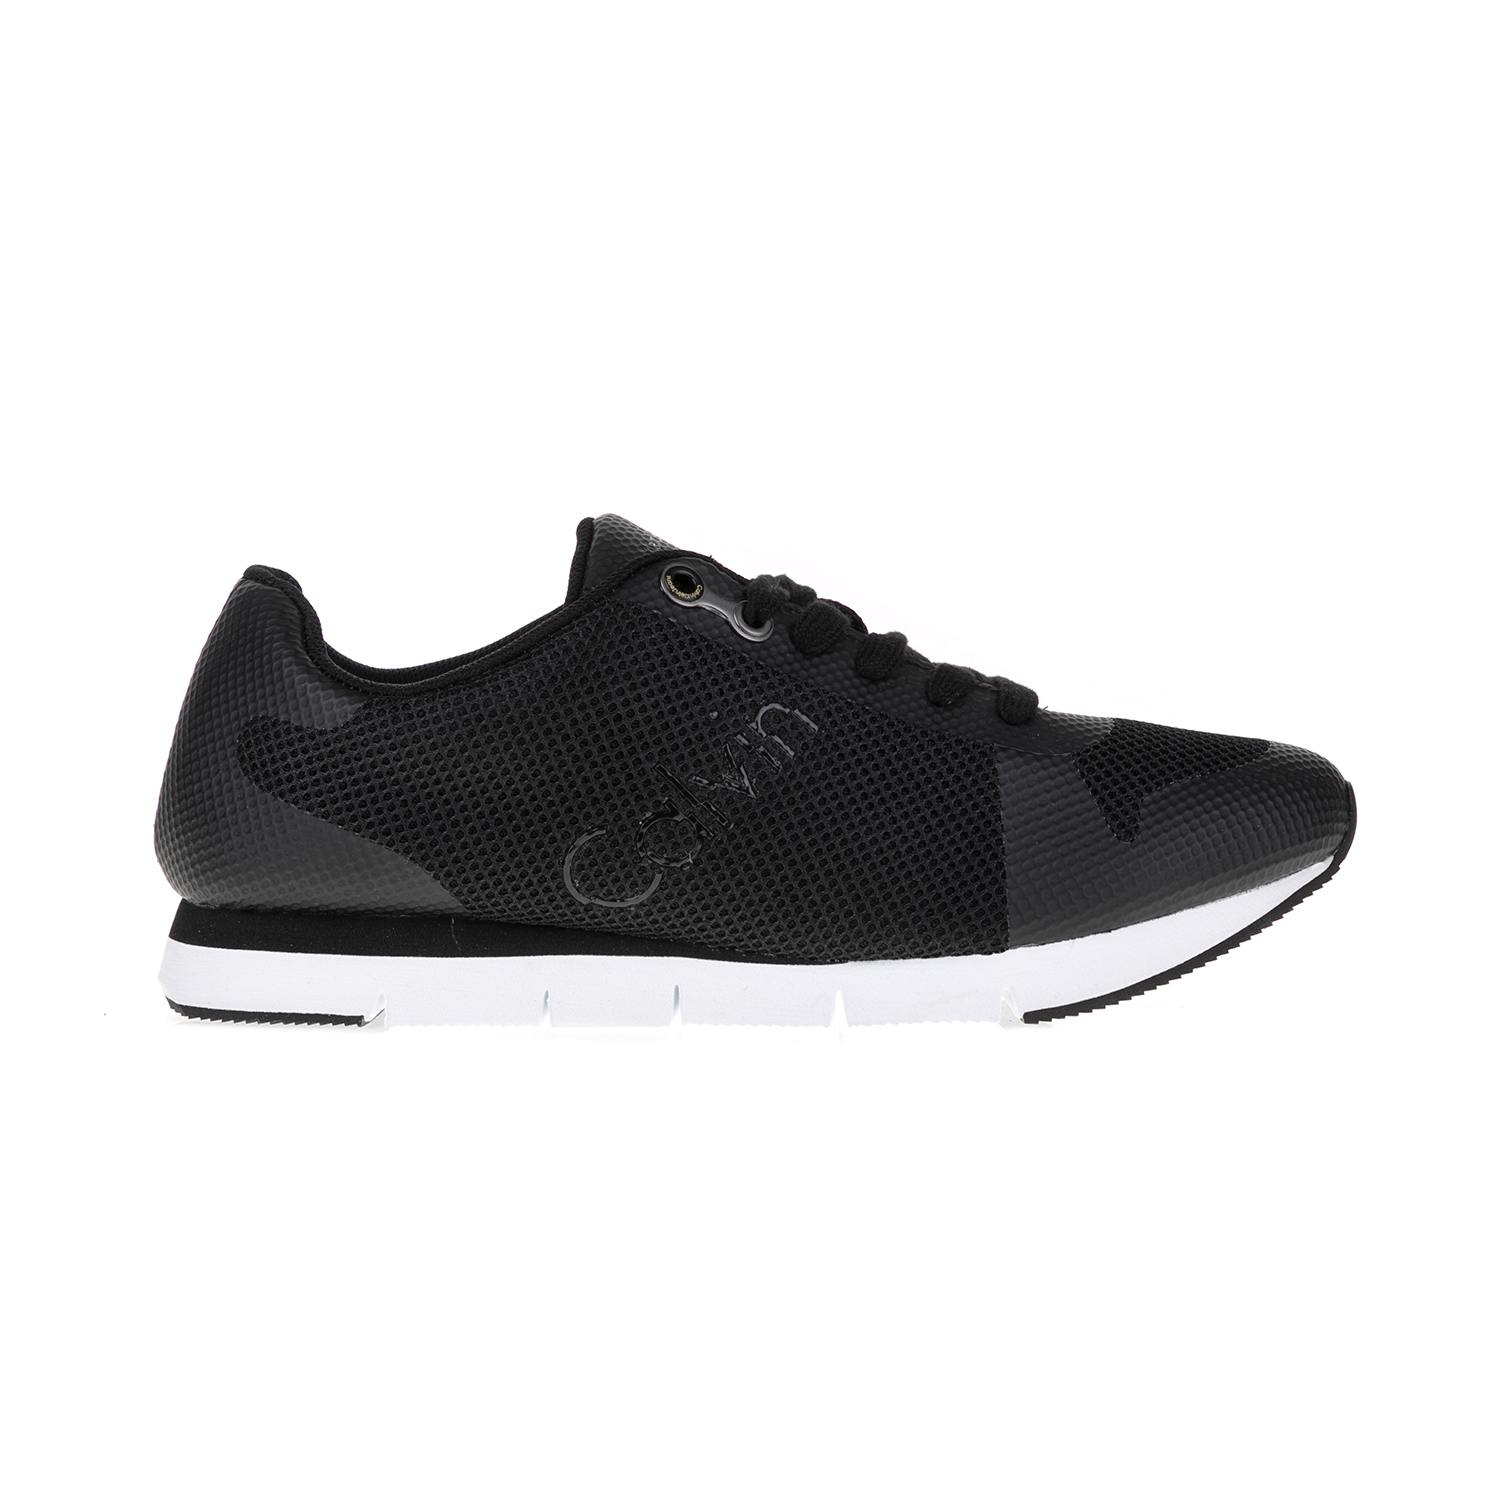 CALVIN KLEIN JEANS – Ανδρικά sneakers JACQUES μαύρα